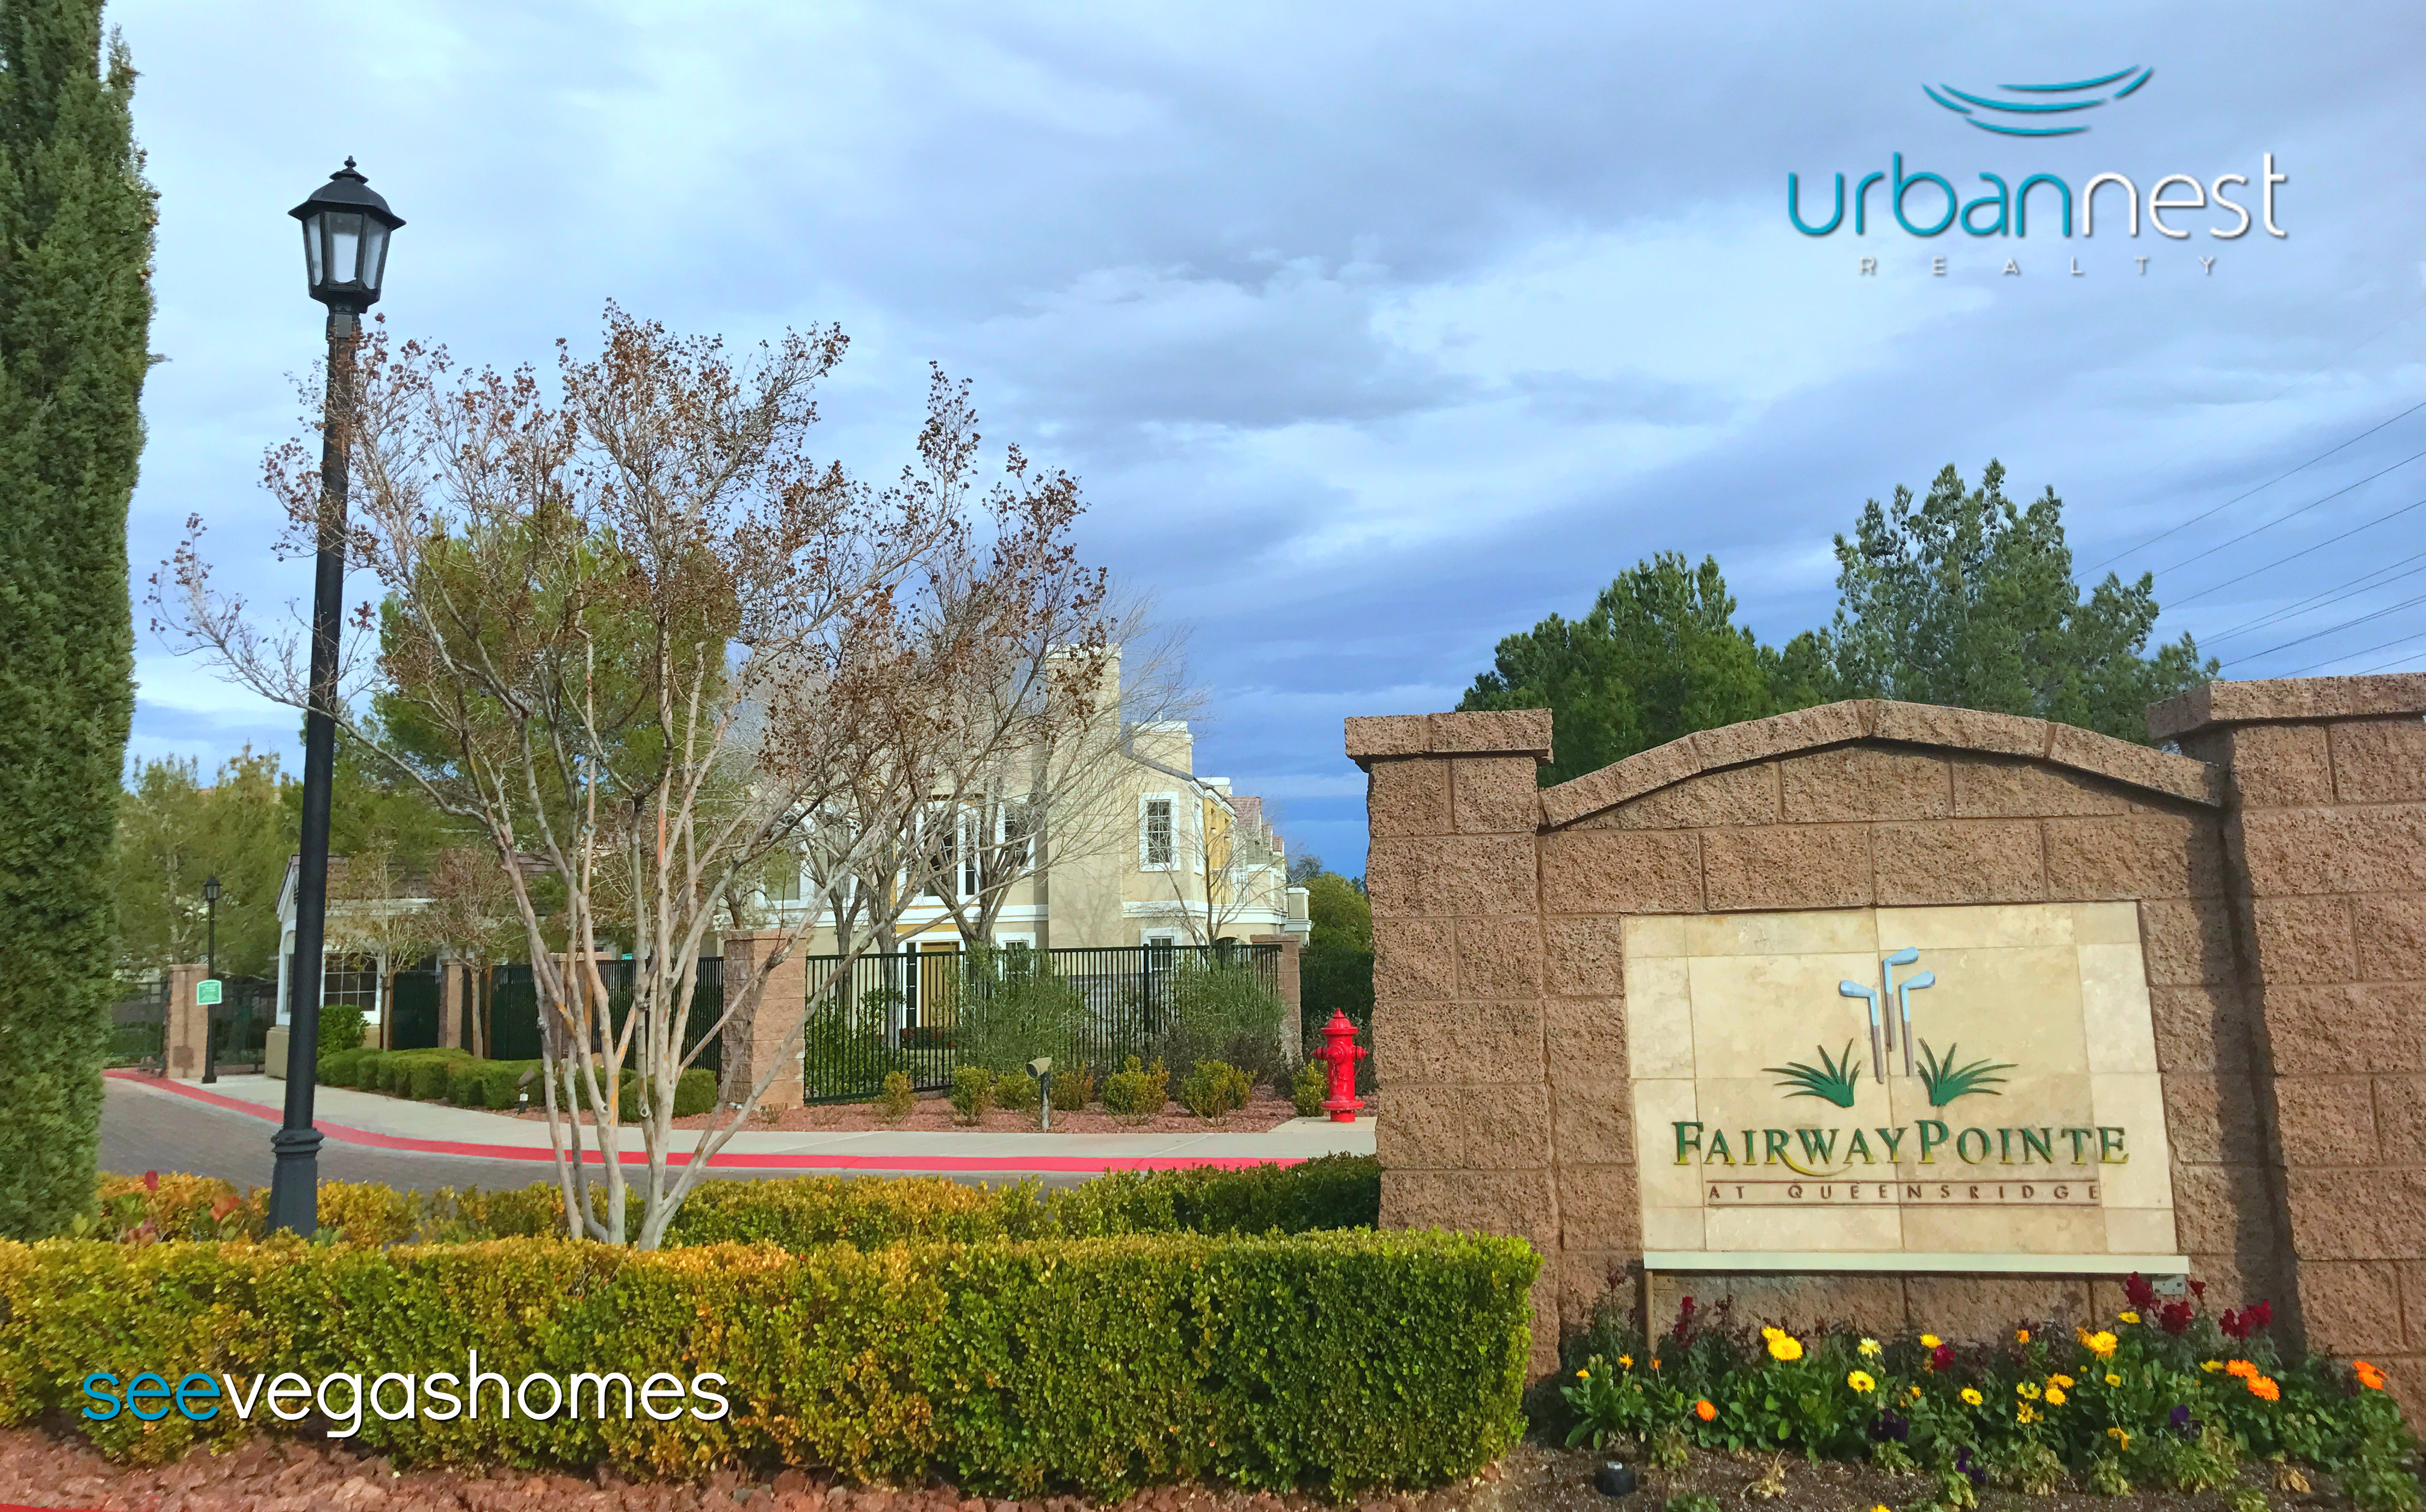 Fairway Pointe Queensridge Townhomes Las Vegas NV 89145 SeeVegasHomes